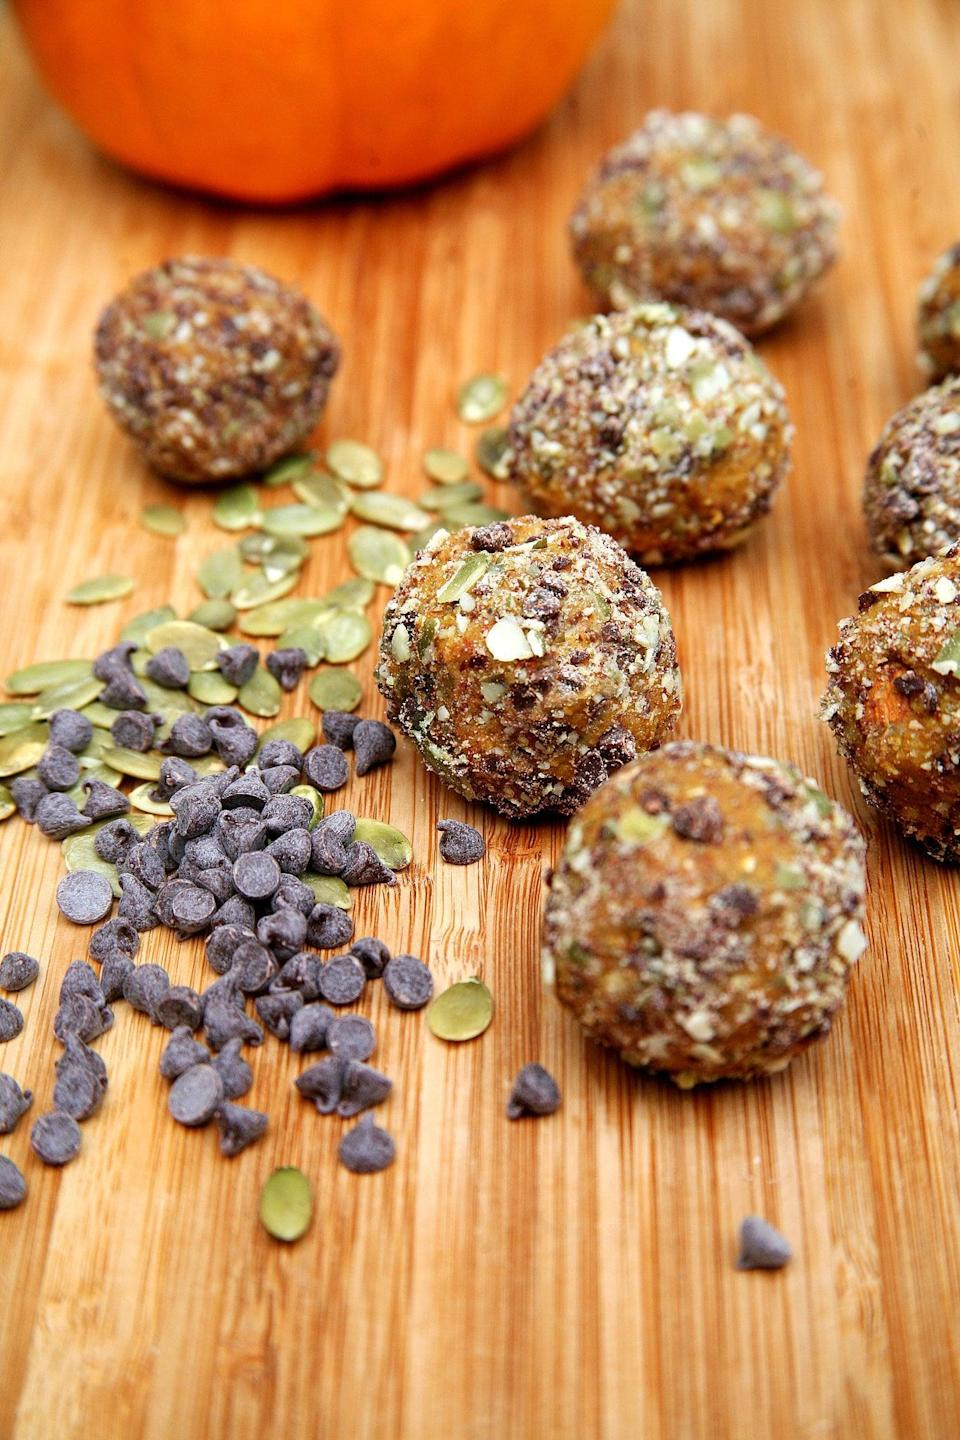 """<p>These vegan cookie-dough-like balls are rolled in chopped chocolate chips and pumpkin seeds, and offer 6.8 grams of protein for two balls.</p> <p><strong>Get the recipe:</strong> <a href=""""https://www.popsugar.com/fitness/Chocolate-Chip-Pumpkin-Protein-Balls-35959228"""" class=""""link rapid-noclick-resp"""" rel=""""nofollow noopener"""" target=""""_blank"""" data-ylk=""""slk:chocolate-chip pumpkin pie protein balls"""">chocolate-chip pumpkin pie protein balls</a></p>"""